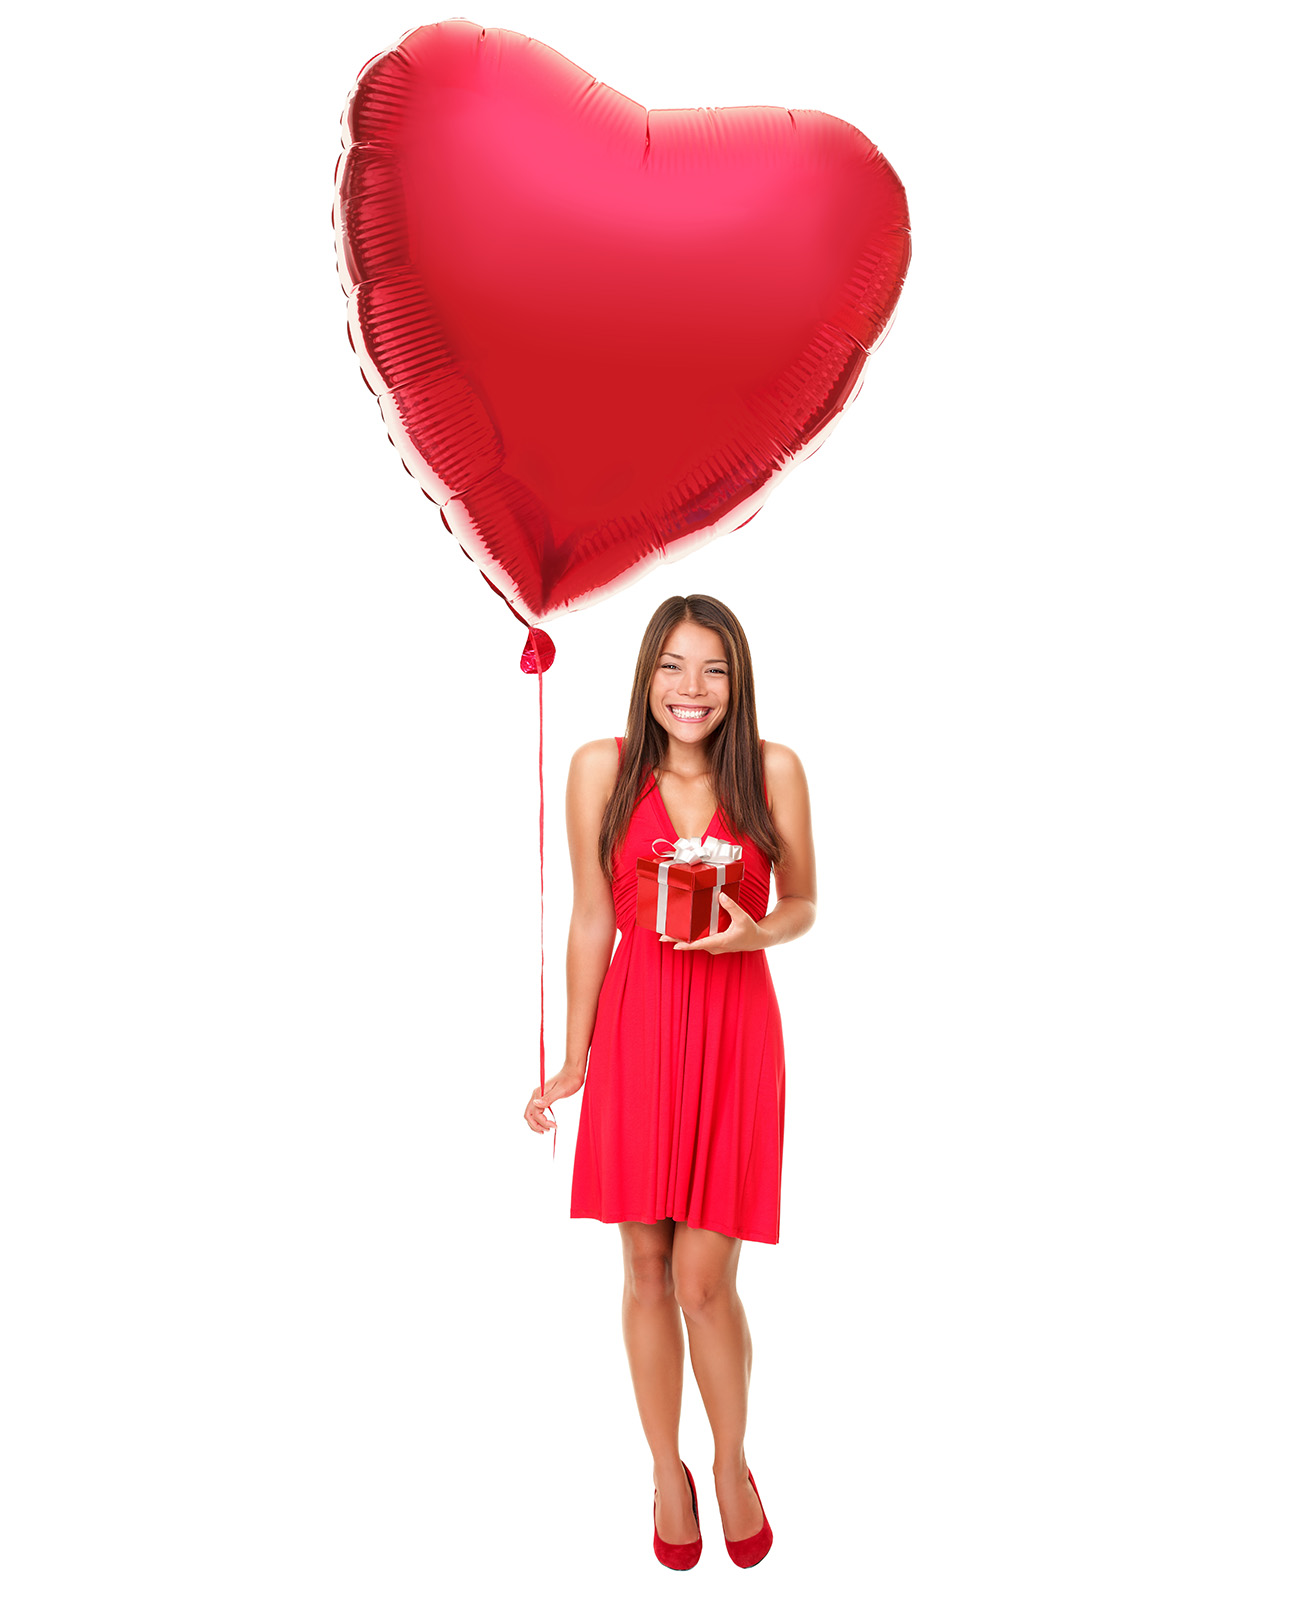 Long-haired beauty holding inflatable heart 50045